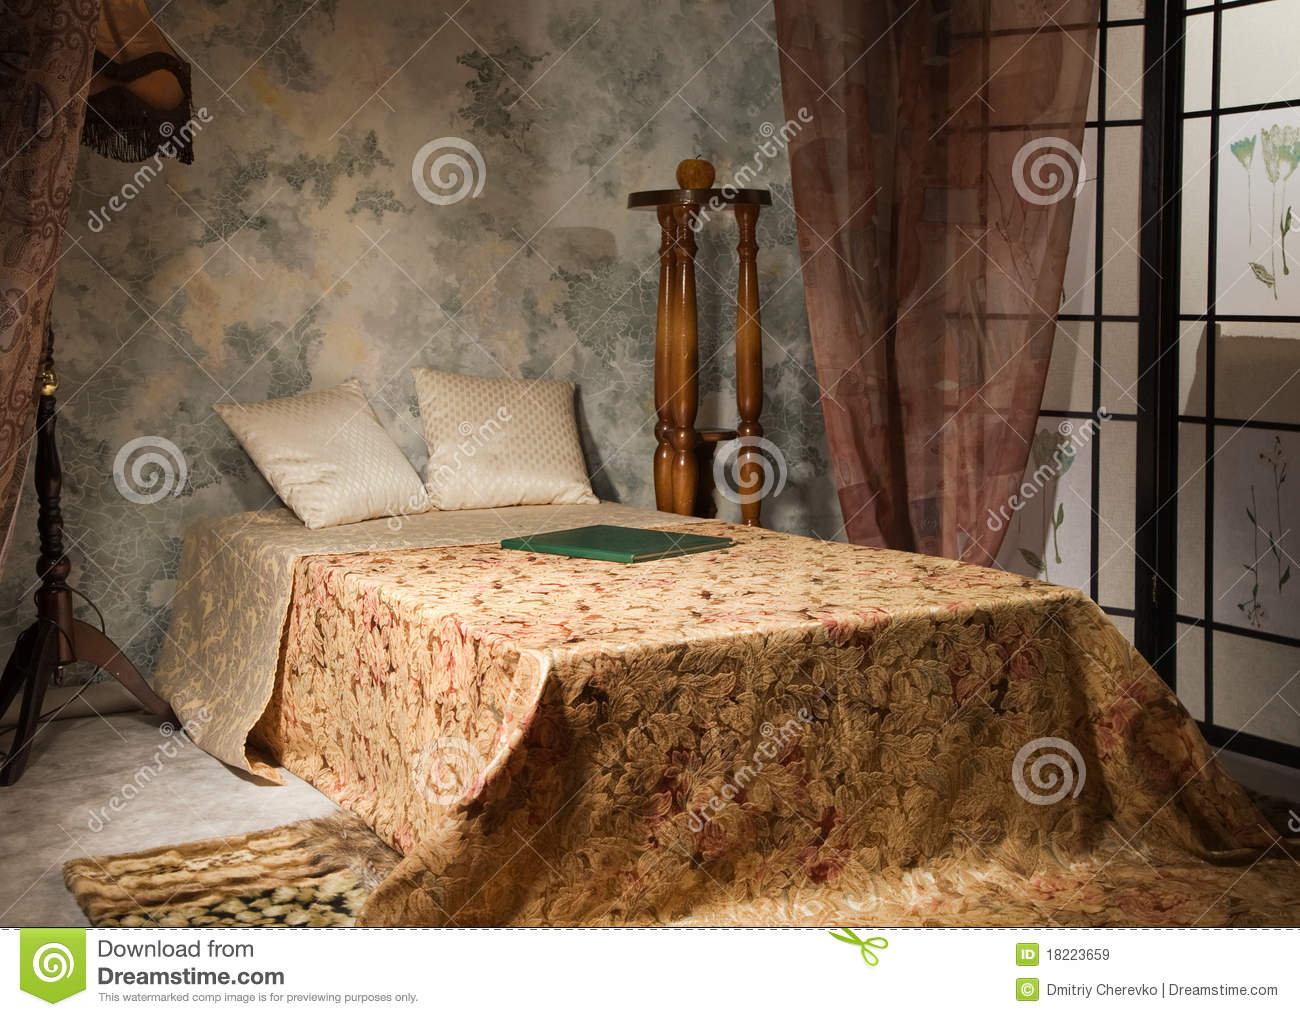 Bedroom interior in the vintage style royalty free stock images image 1822 - Vintage style images ...